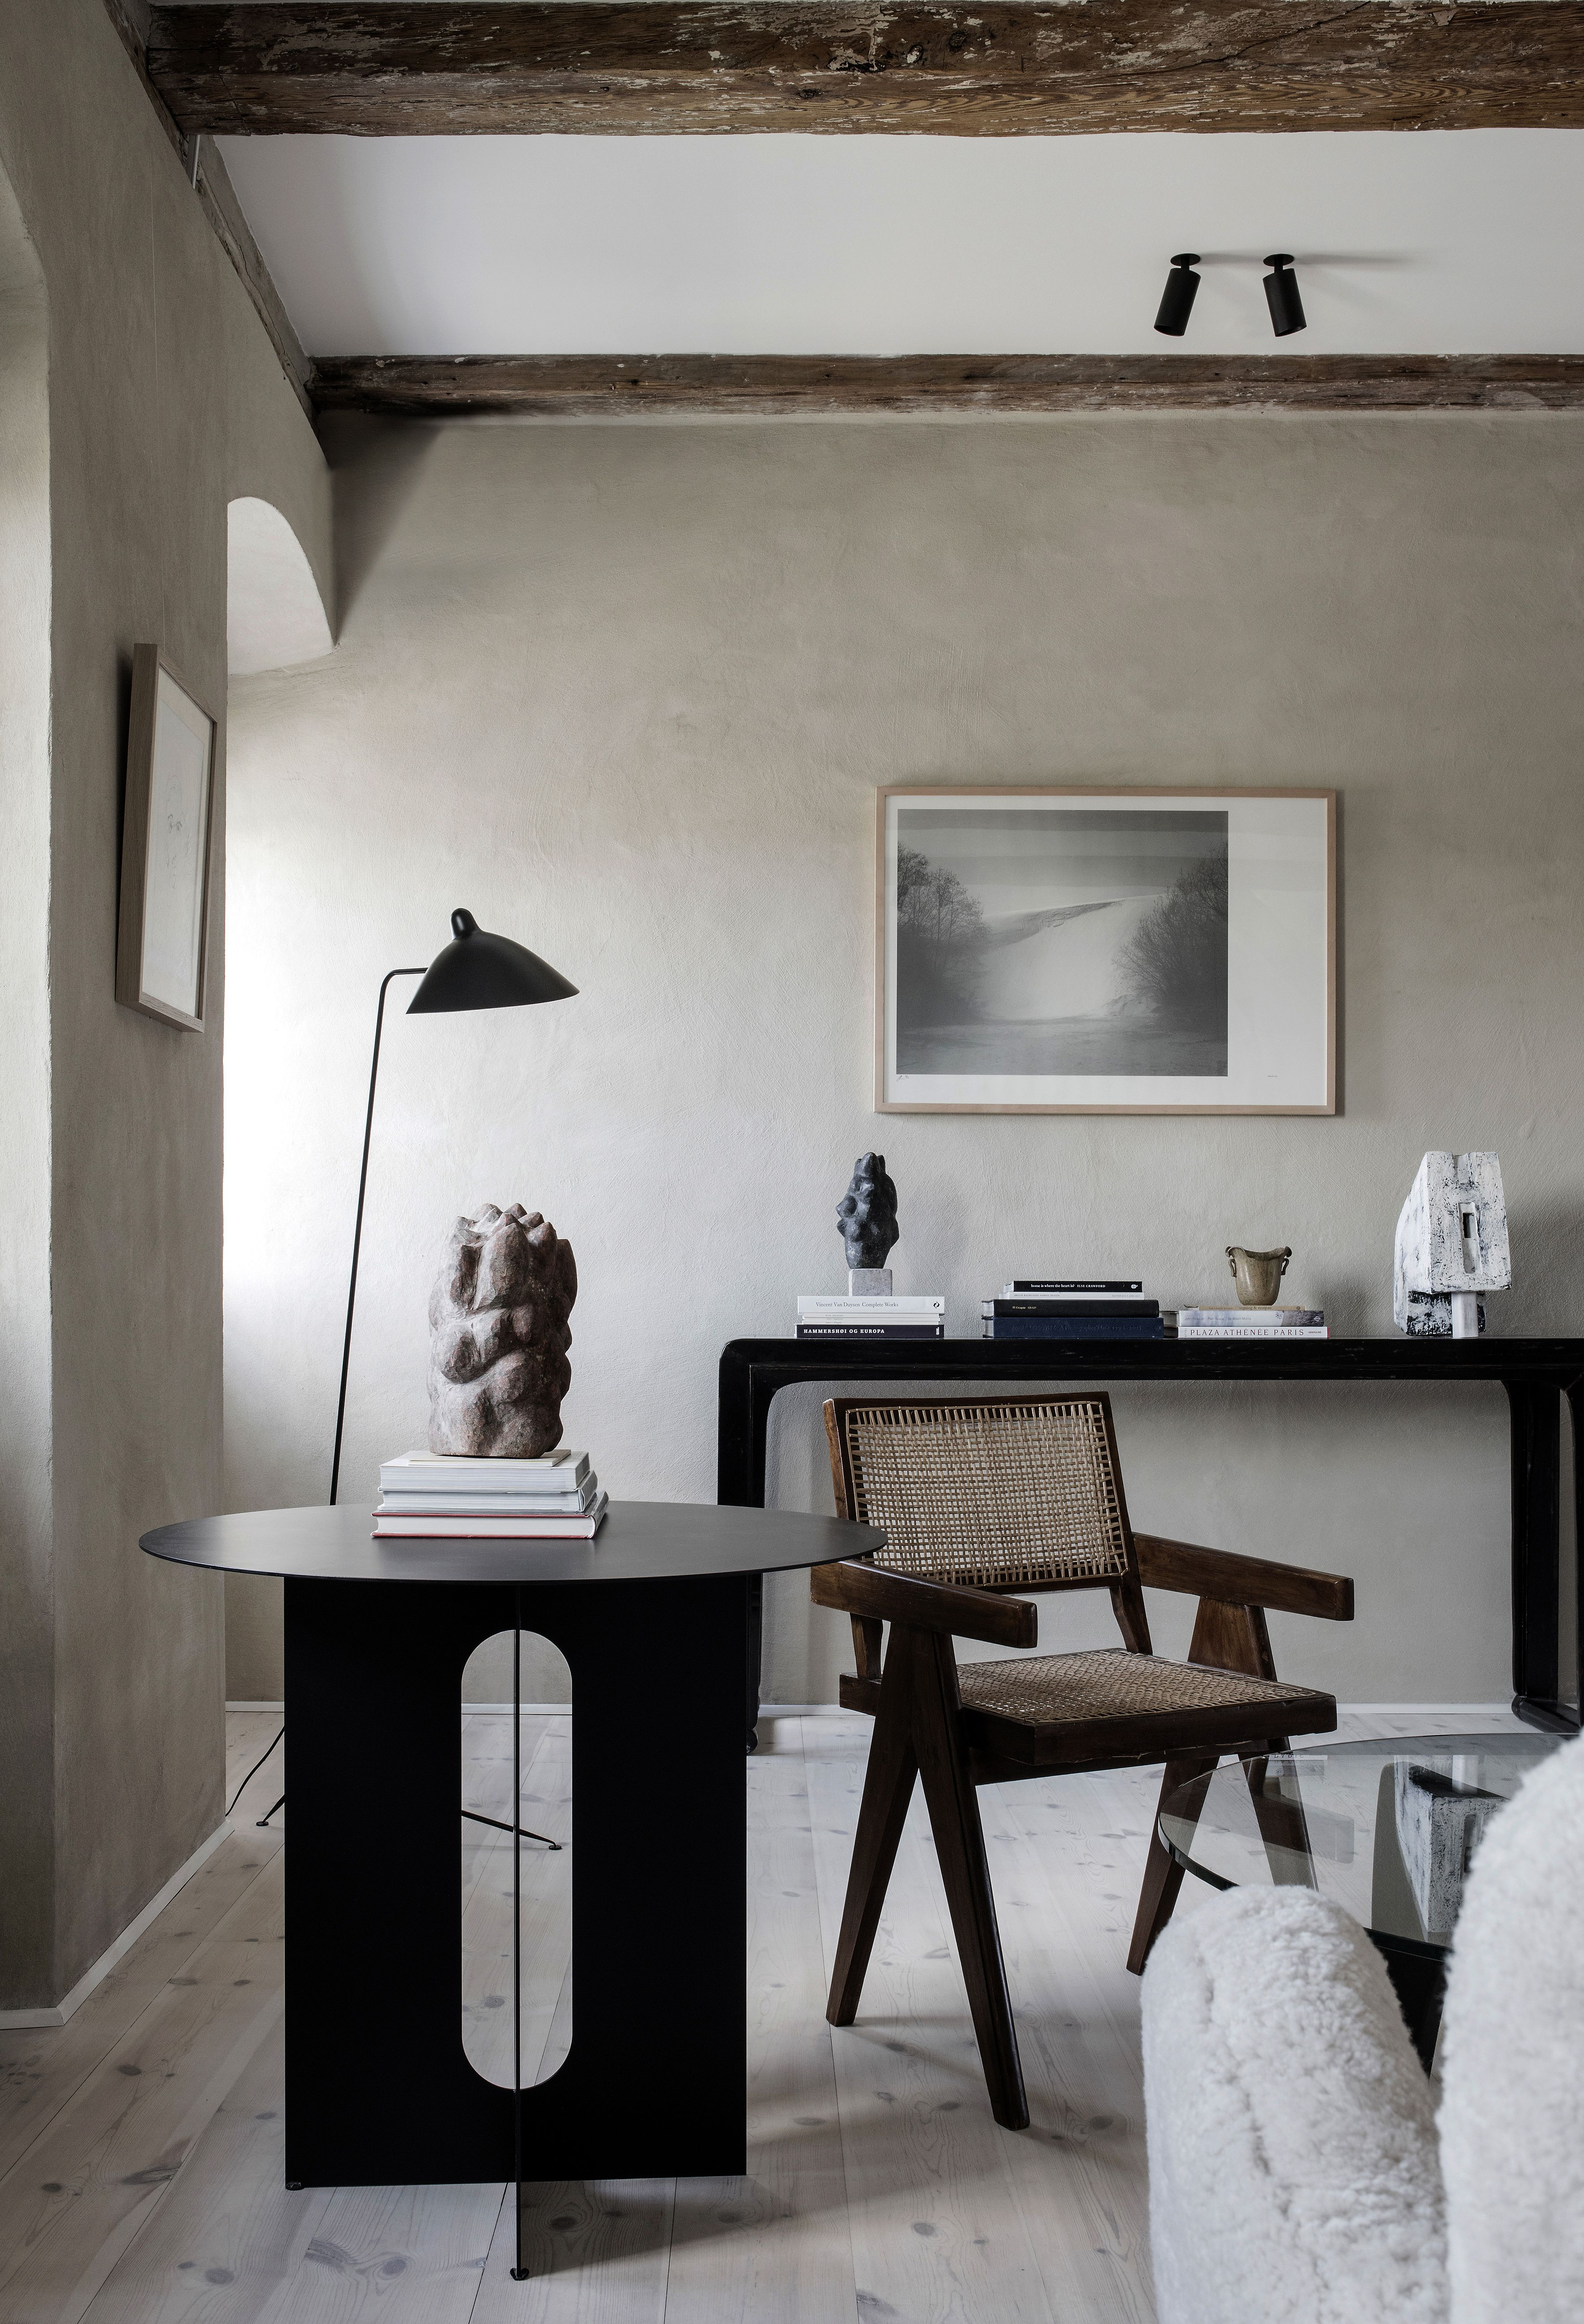 Bonne Table Lille Architect Danielle Siggerud The Palace In 2019 Pinterest